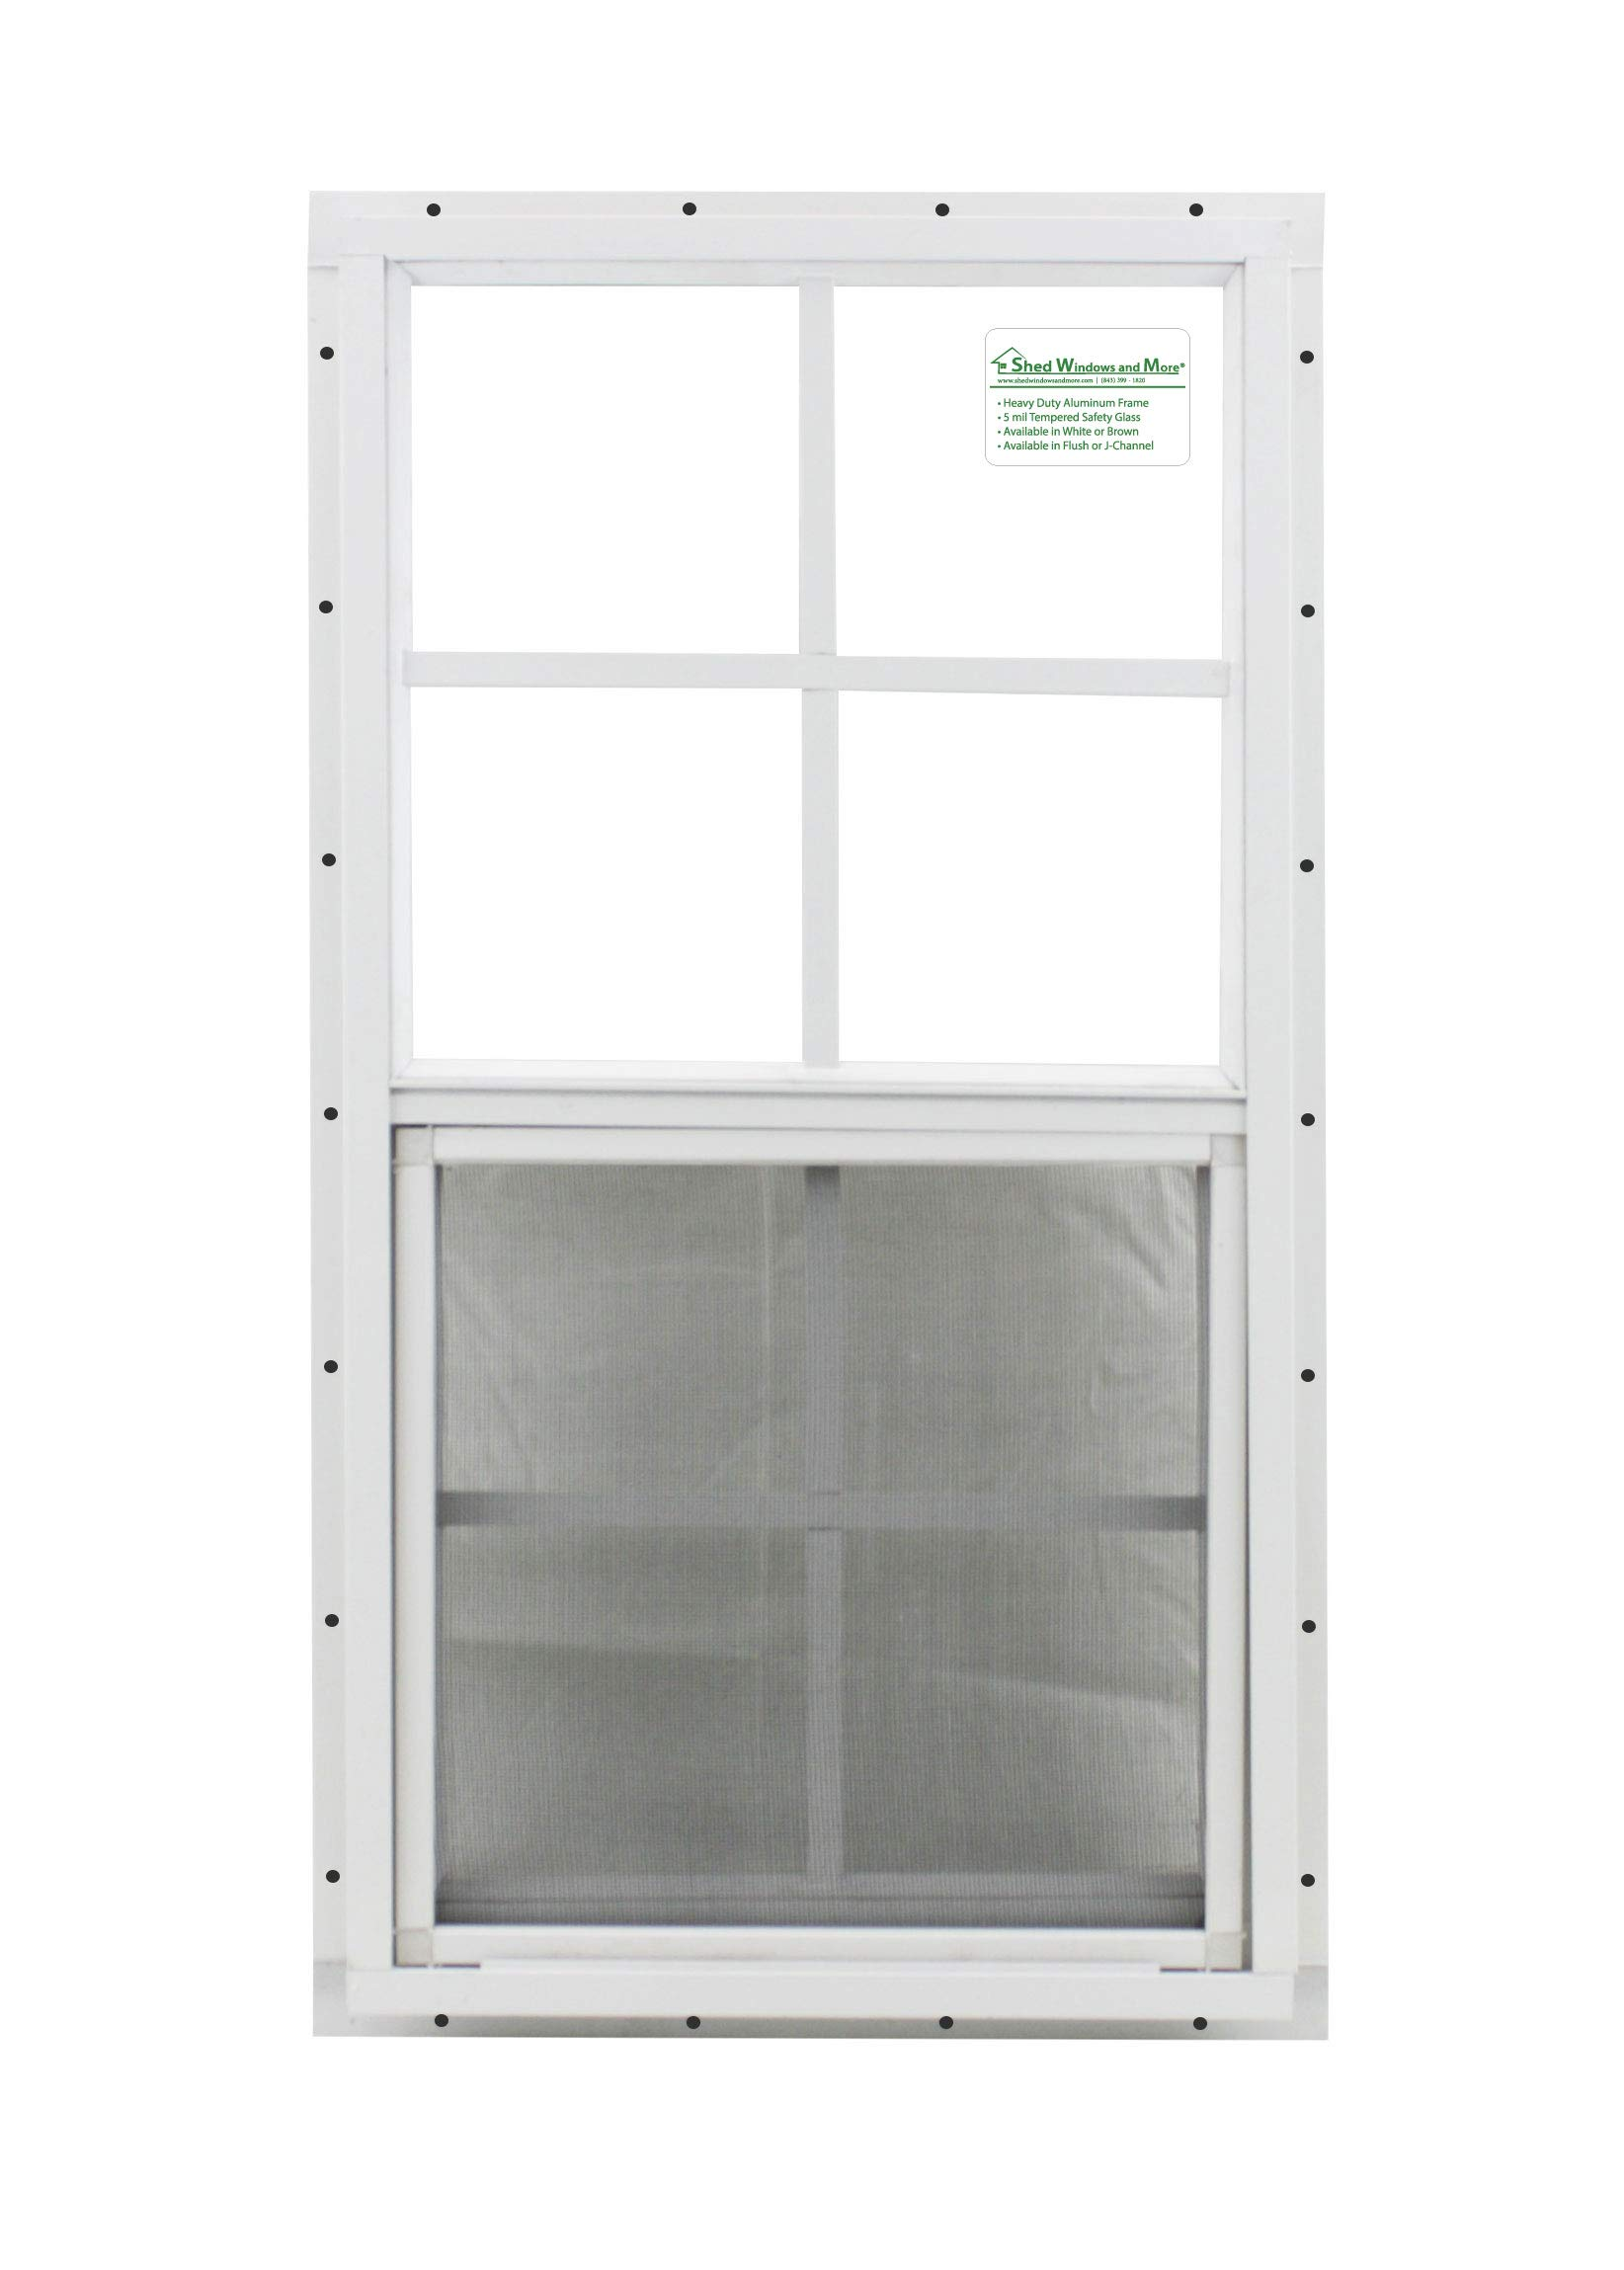 Shed Window 14 X 27 White J-channel Safety Glass Playhouse Window